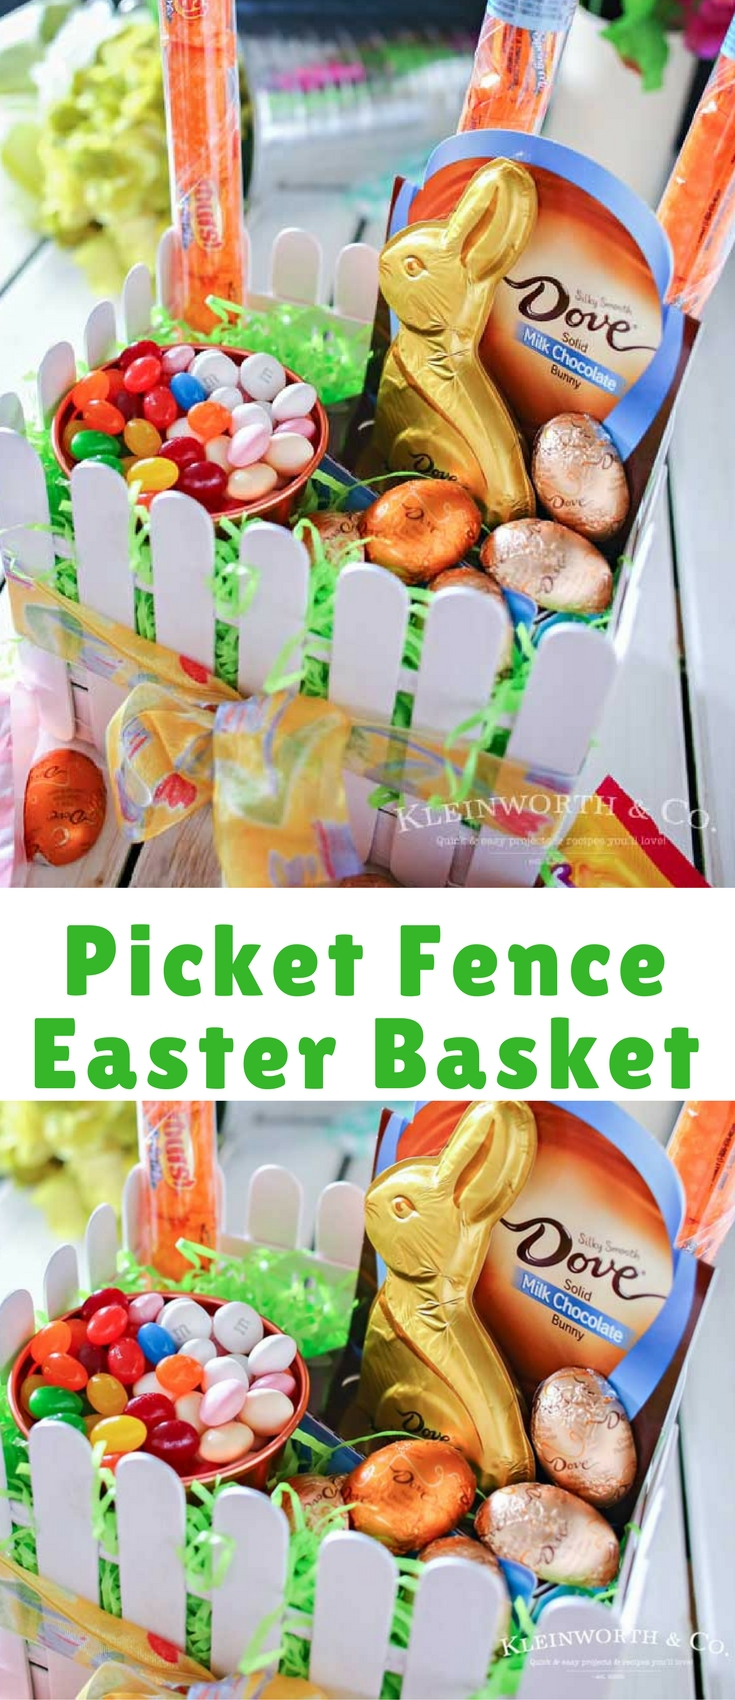 This adorable Picket Fence Easter Basket is easy to make with this step-by-step tutorial using tongue depressors or popsicle sticks. Load it full of your favorite Easter candy & you know everyone will love it.